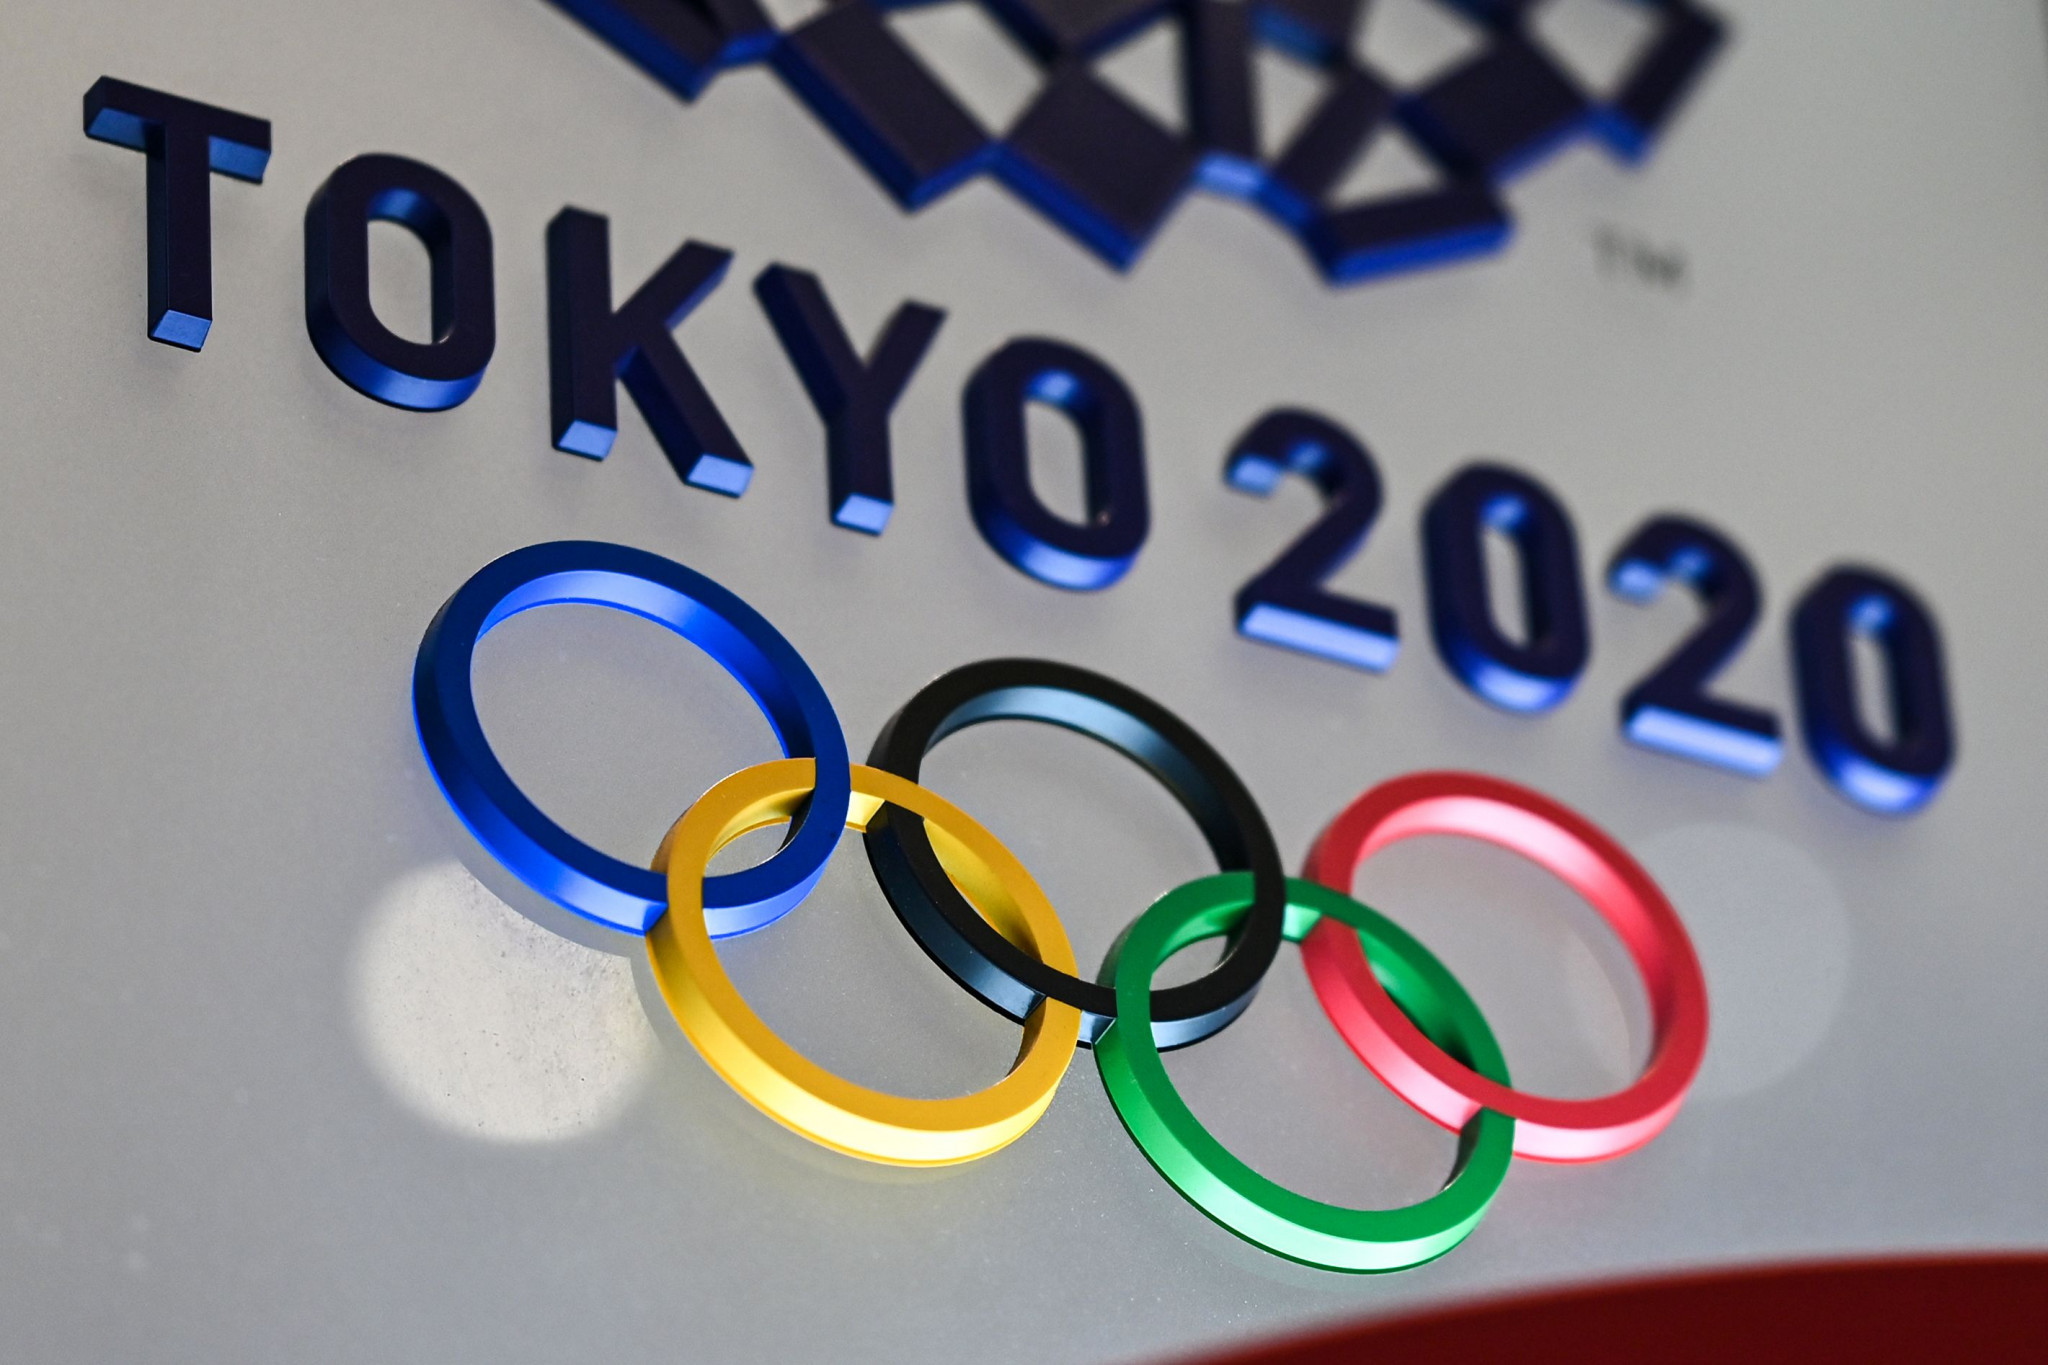 Tokyo 2020 plan meeting to discuss Mori's sexist remarks as 390 volunteers quit over comments